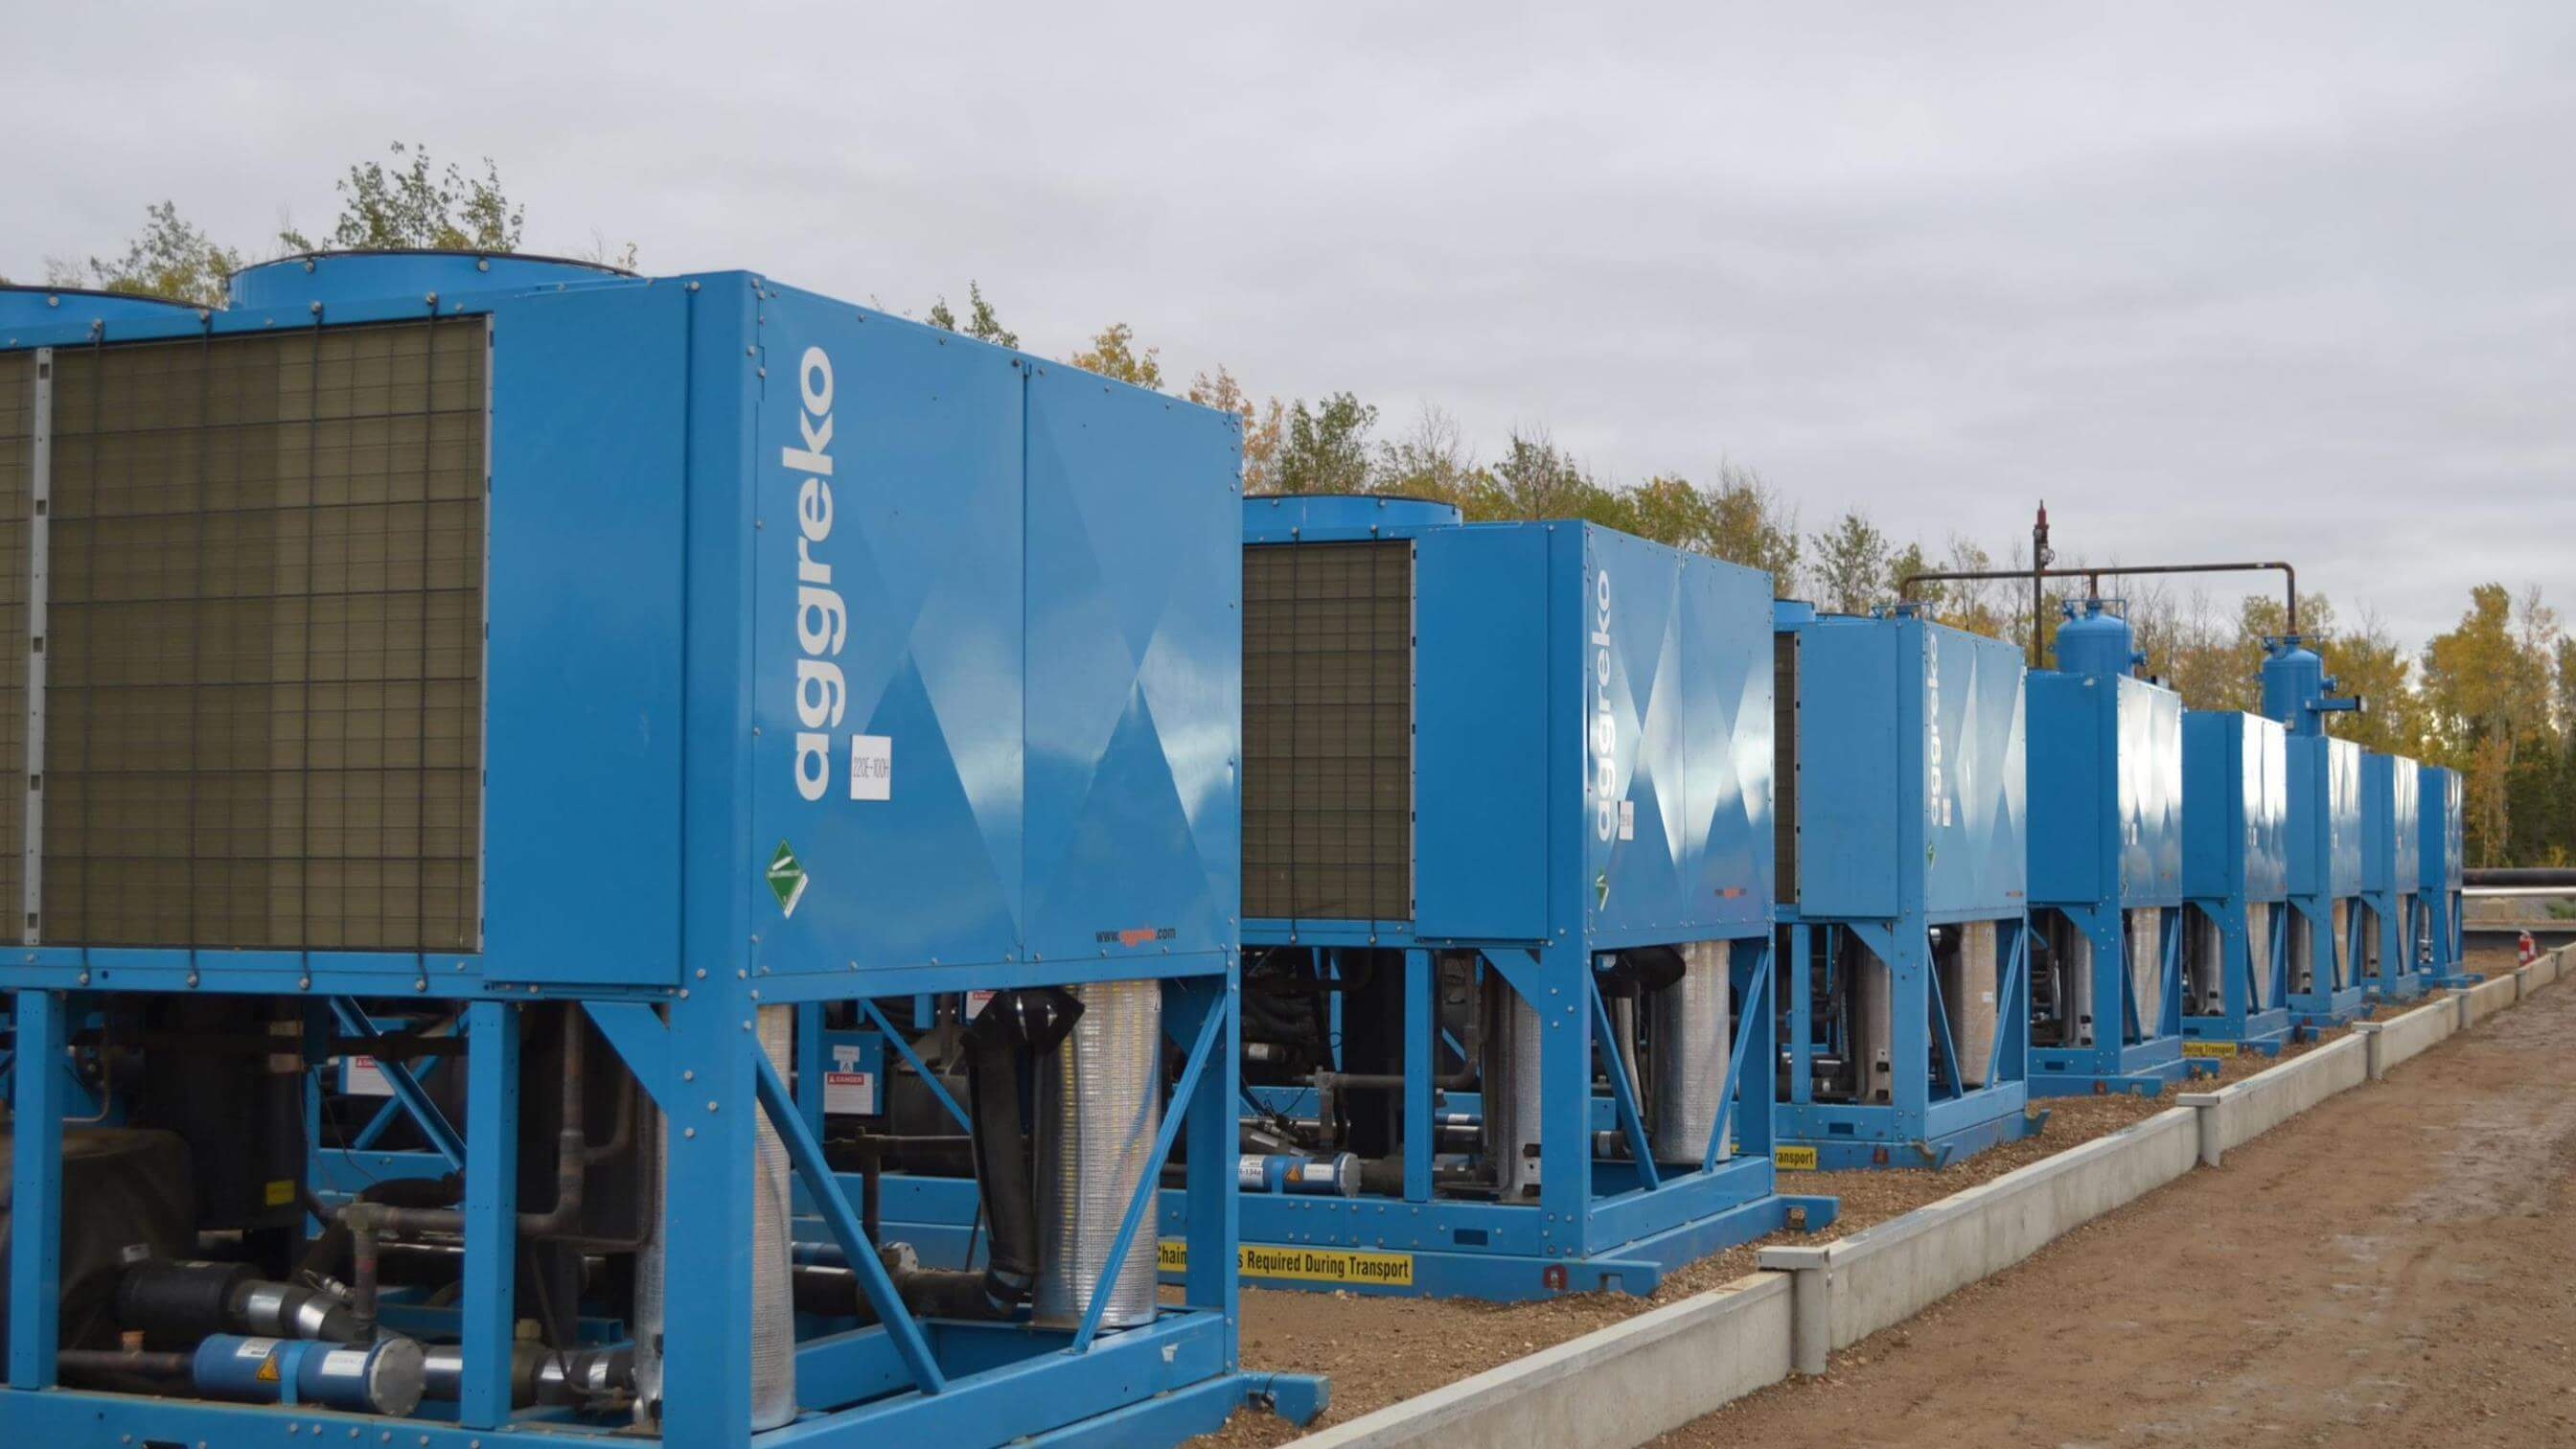 Row of Aggreko chillers outside